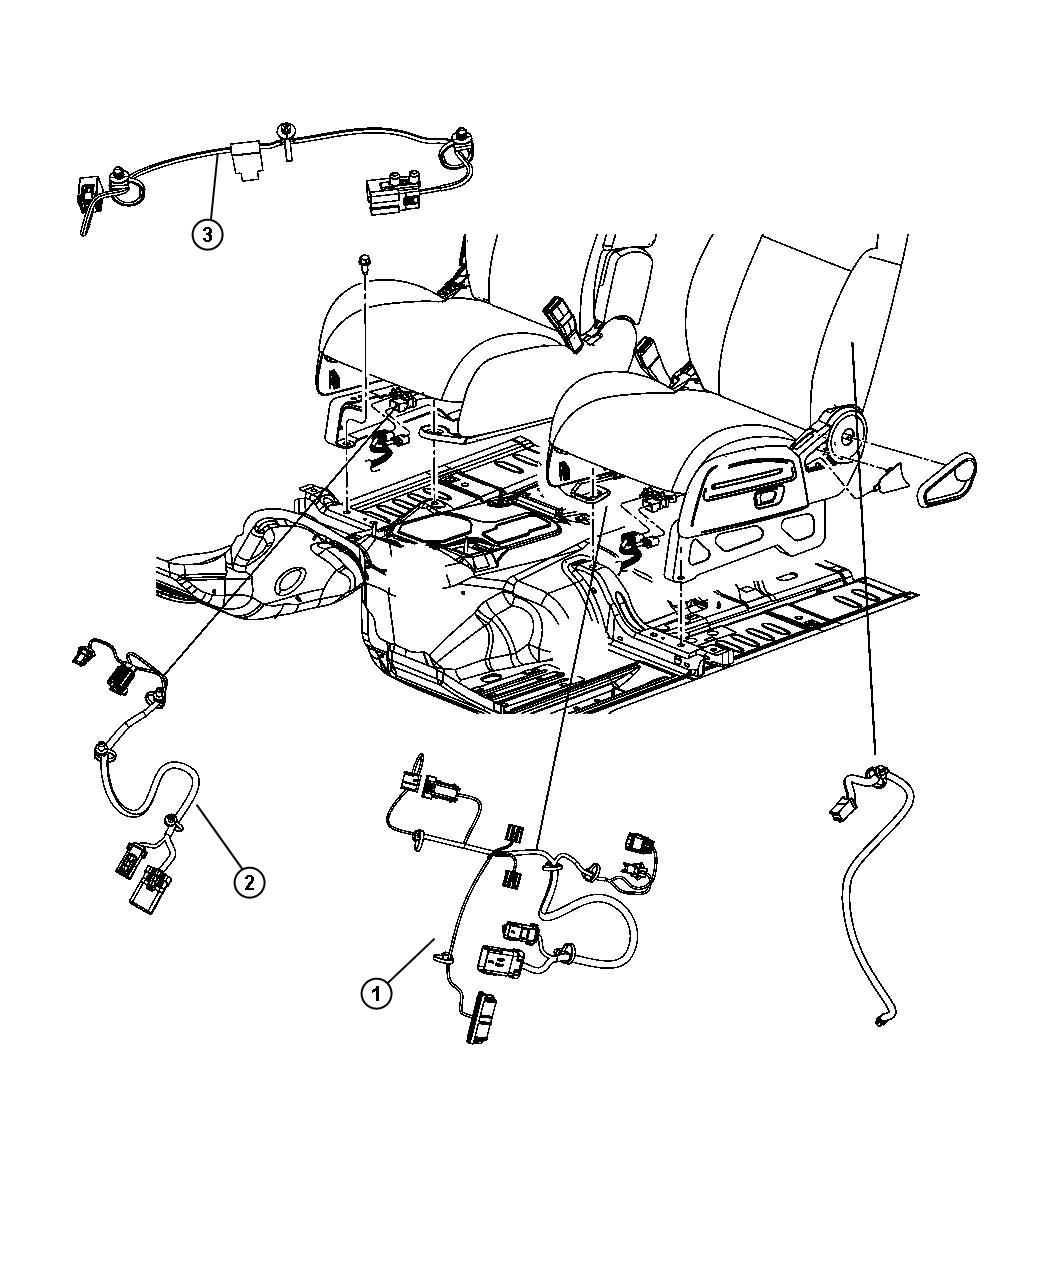 1983 Jeep Cj7 Wiring Diagram | Wiring Diagram Vehicle Wiring Diagrams Online on